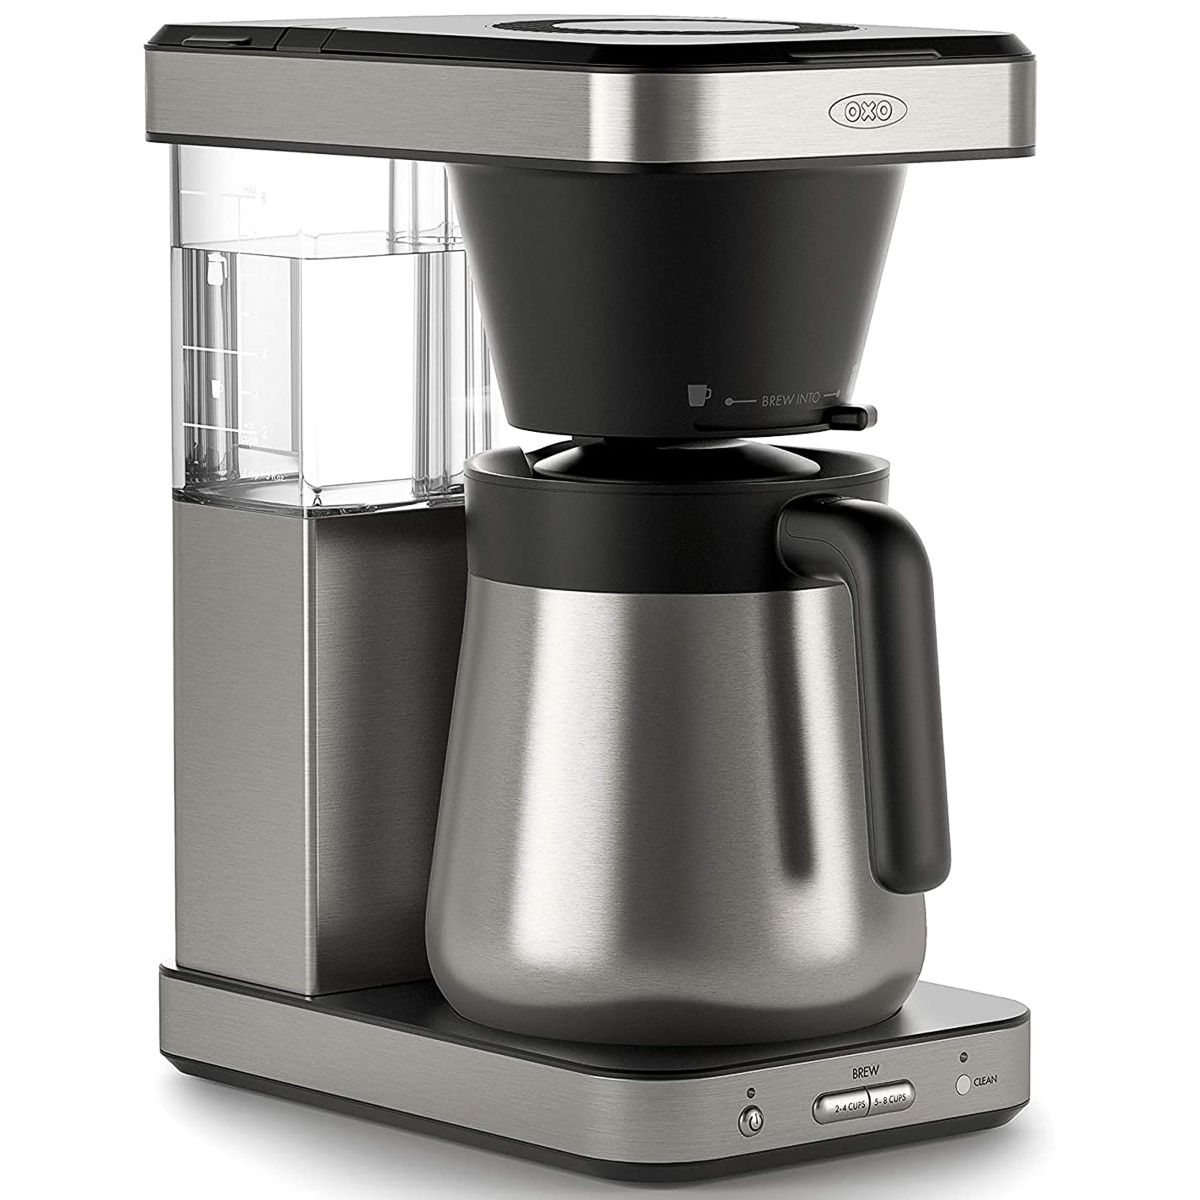 OXO 8 cup